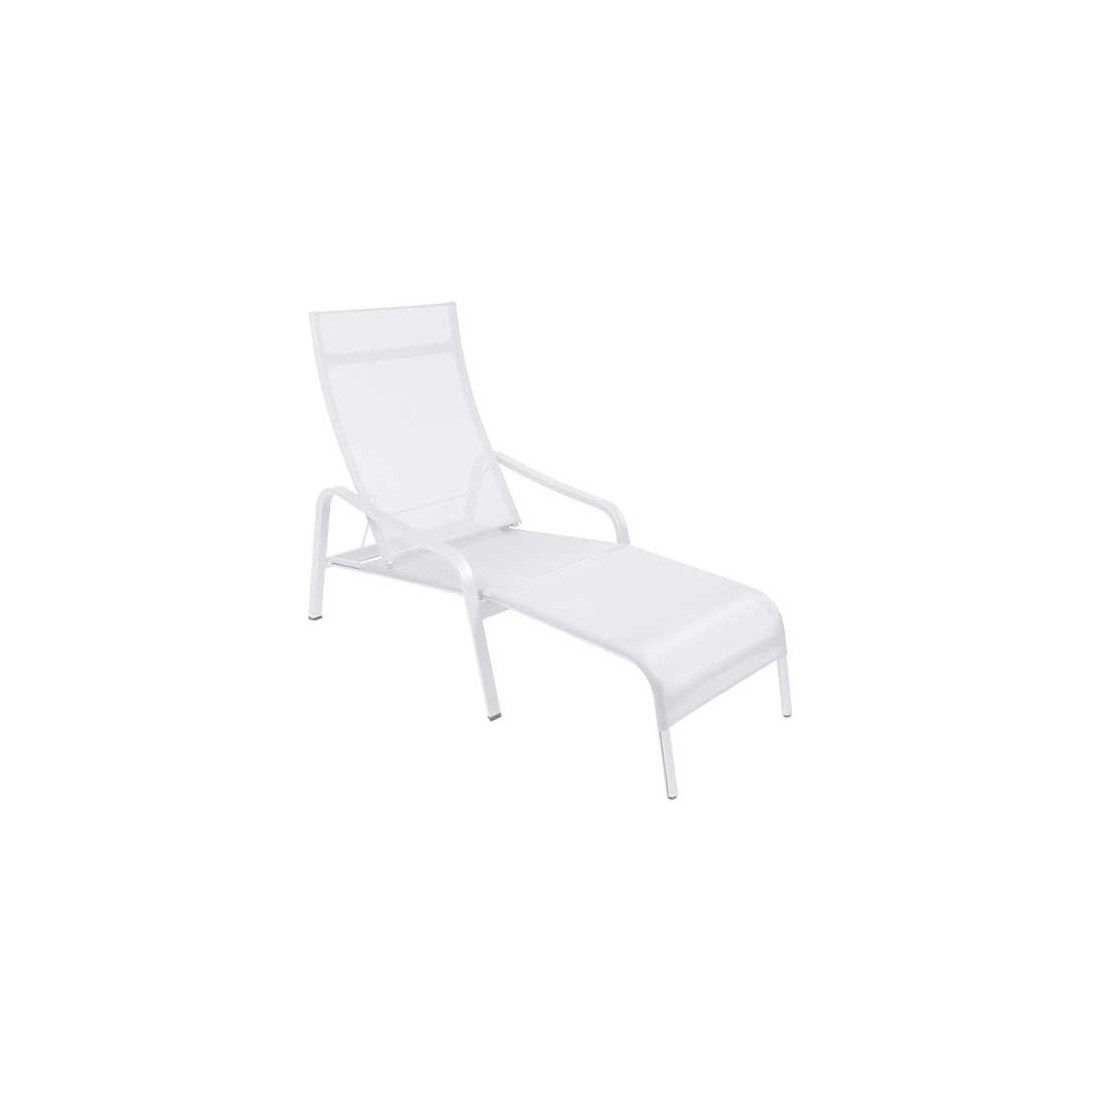 Chaise Longue Piscine Fermob Deck Chair AlizÉ Fermob à 616 00 Maintenant Chez Confort